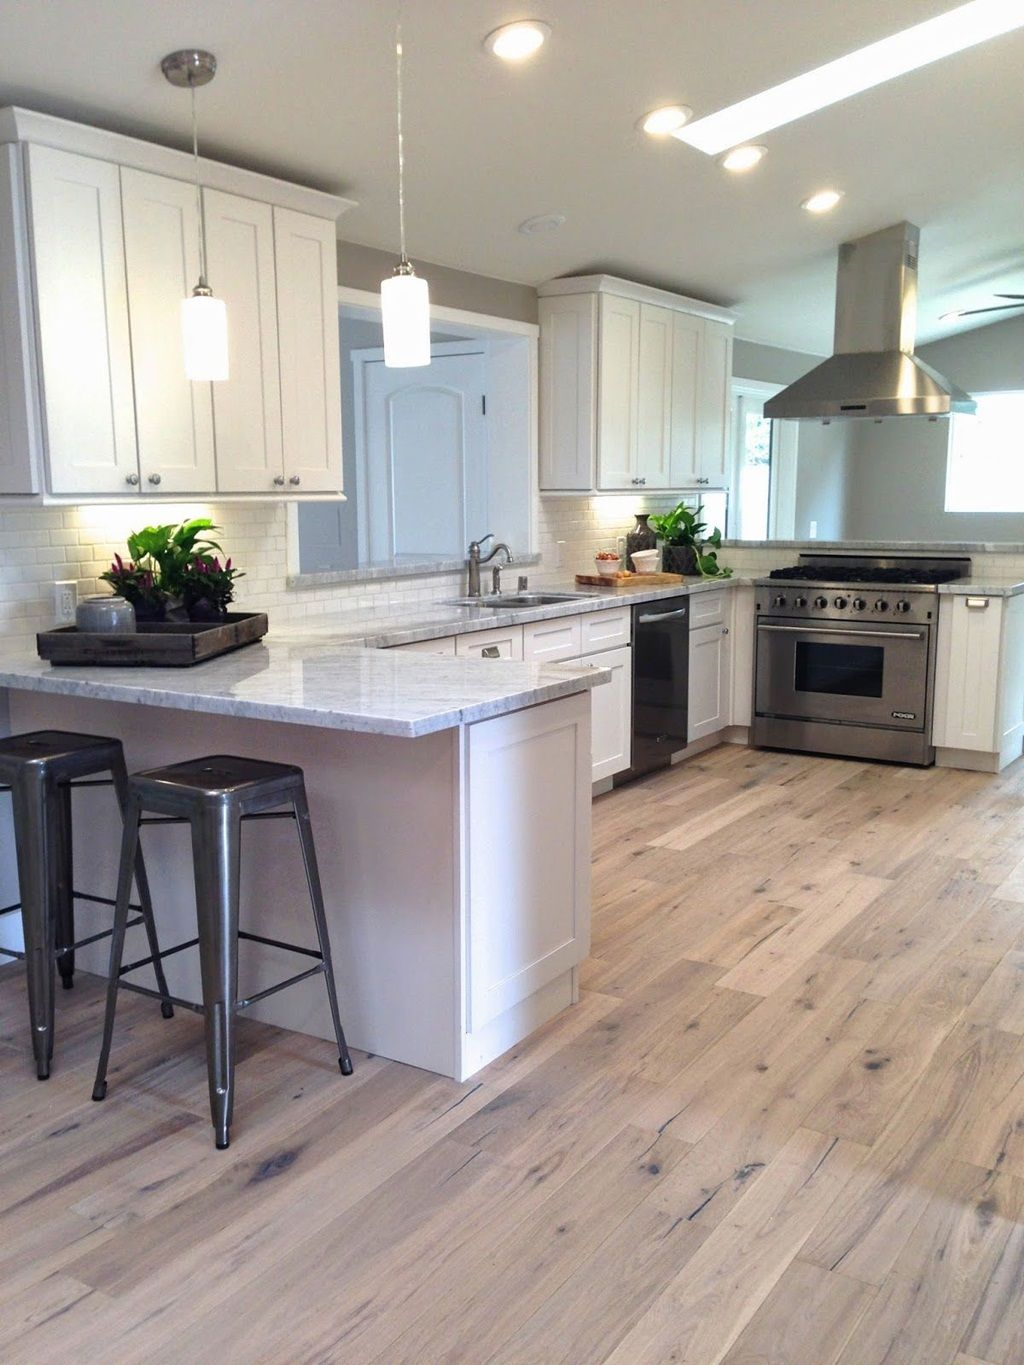 Kitchen Flooring Trends Self Sharpening Knives 2019 Best Choices For Today S Homes